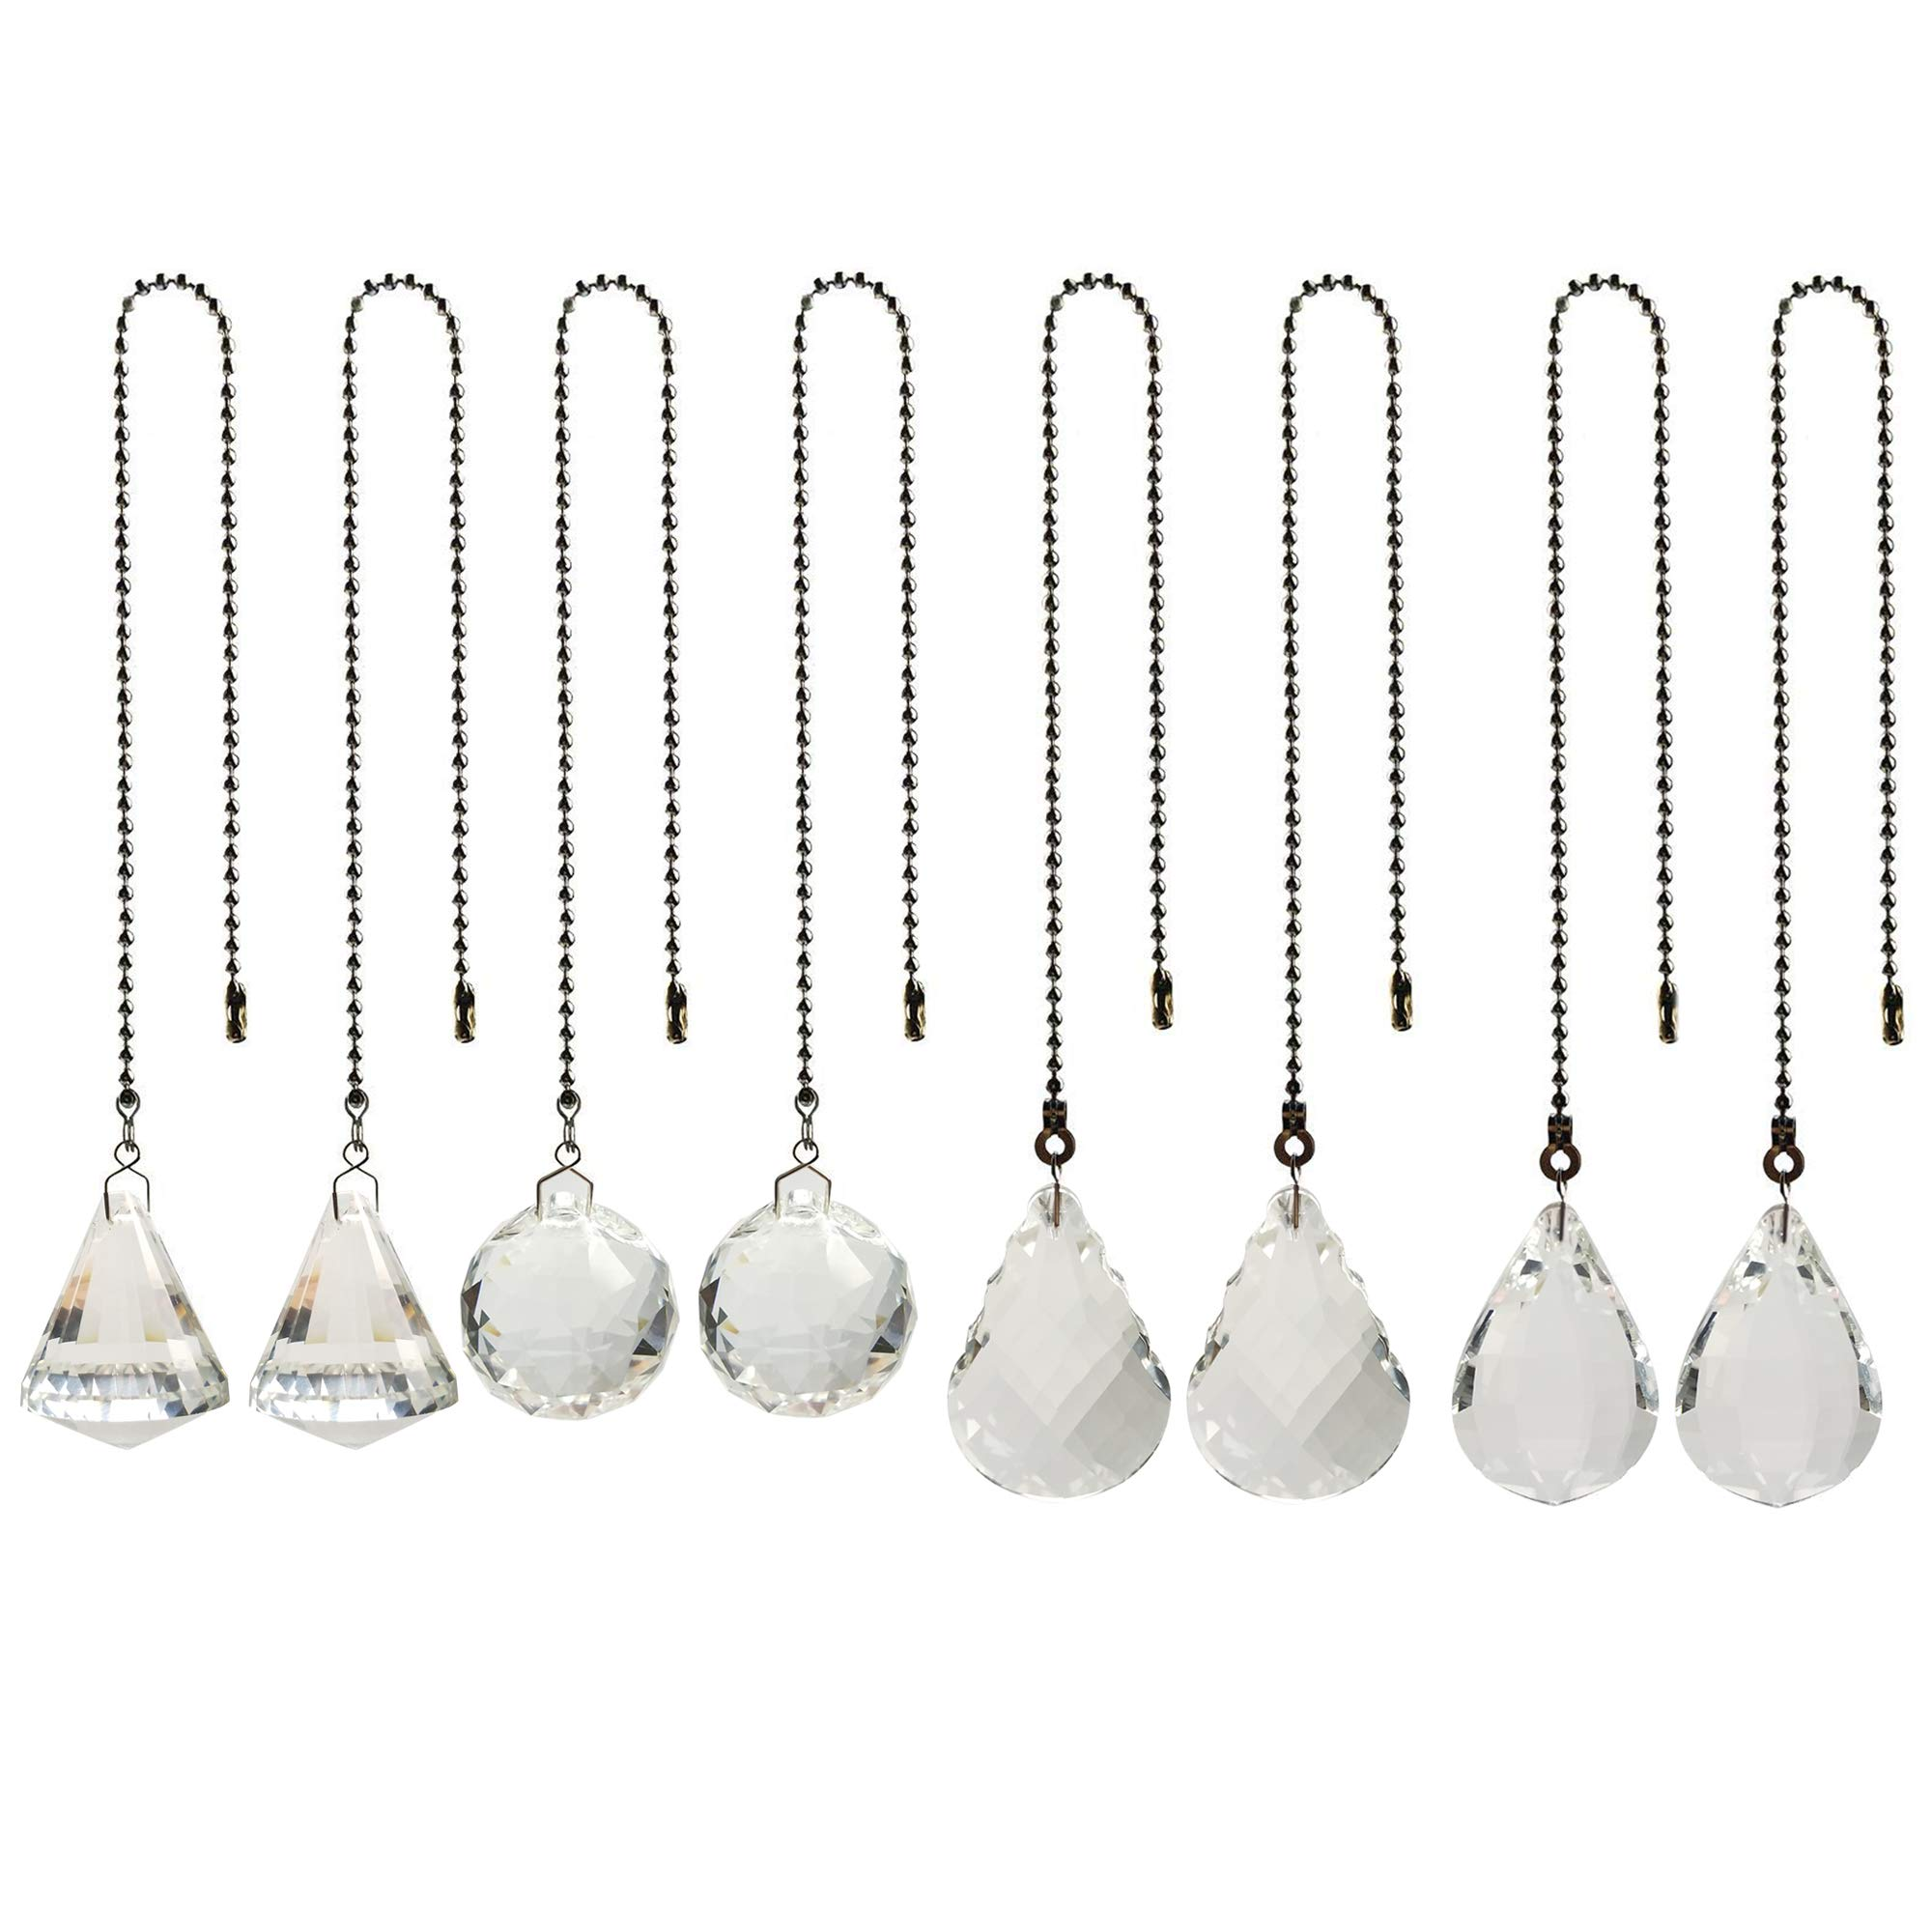 8 Pcs Crystal Prisms Charm Pendant Ceiling Fan Pull Chain Extender with Ball Chain Connector by MOMOONNON